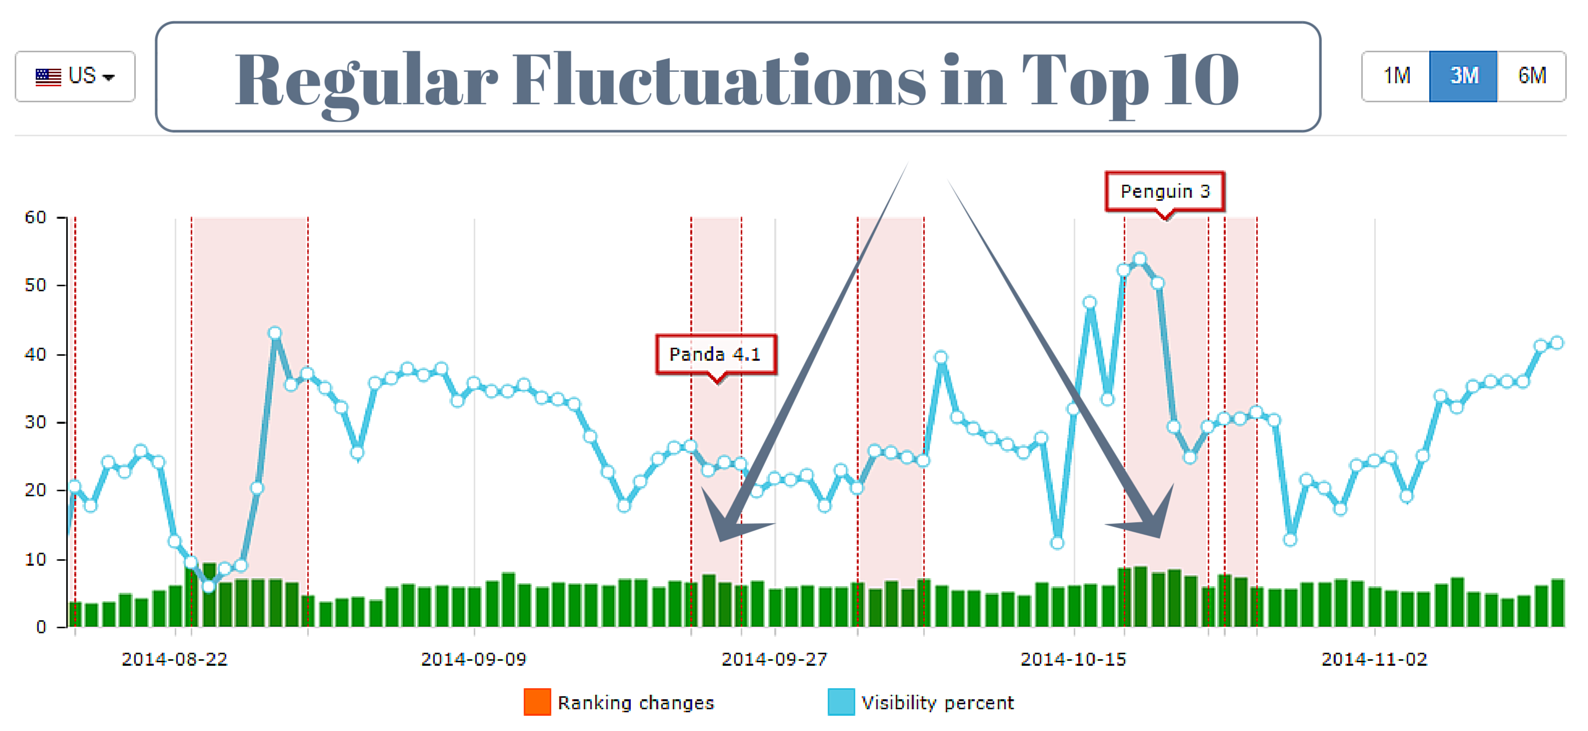 Regular ranking fluctuations in Top 10